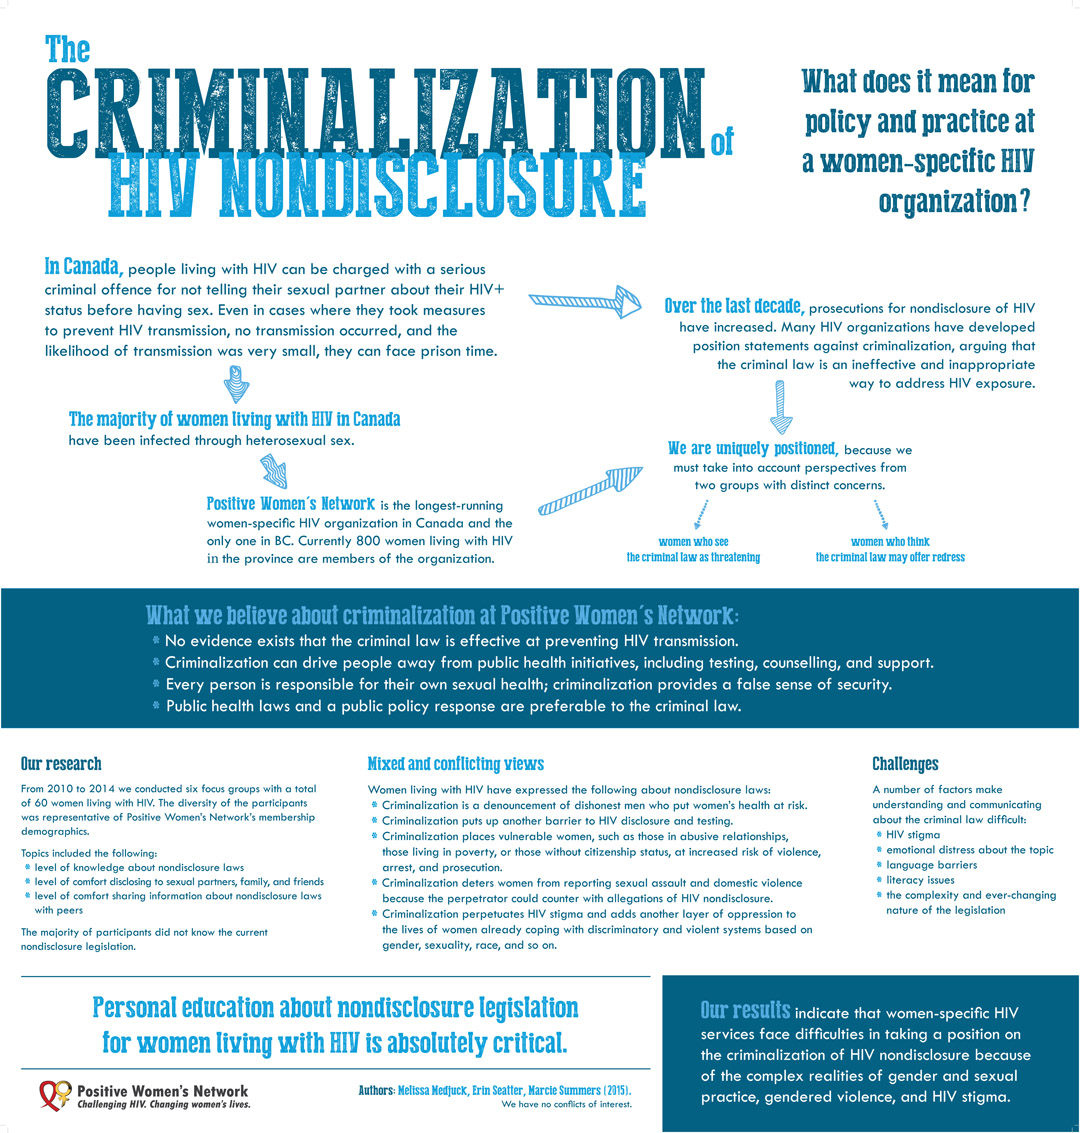 The Criminalization of HIV Nondisclosure: What Does It Mean for Policy and Practice at a Women-Specific HIV Organization? (2015)